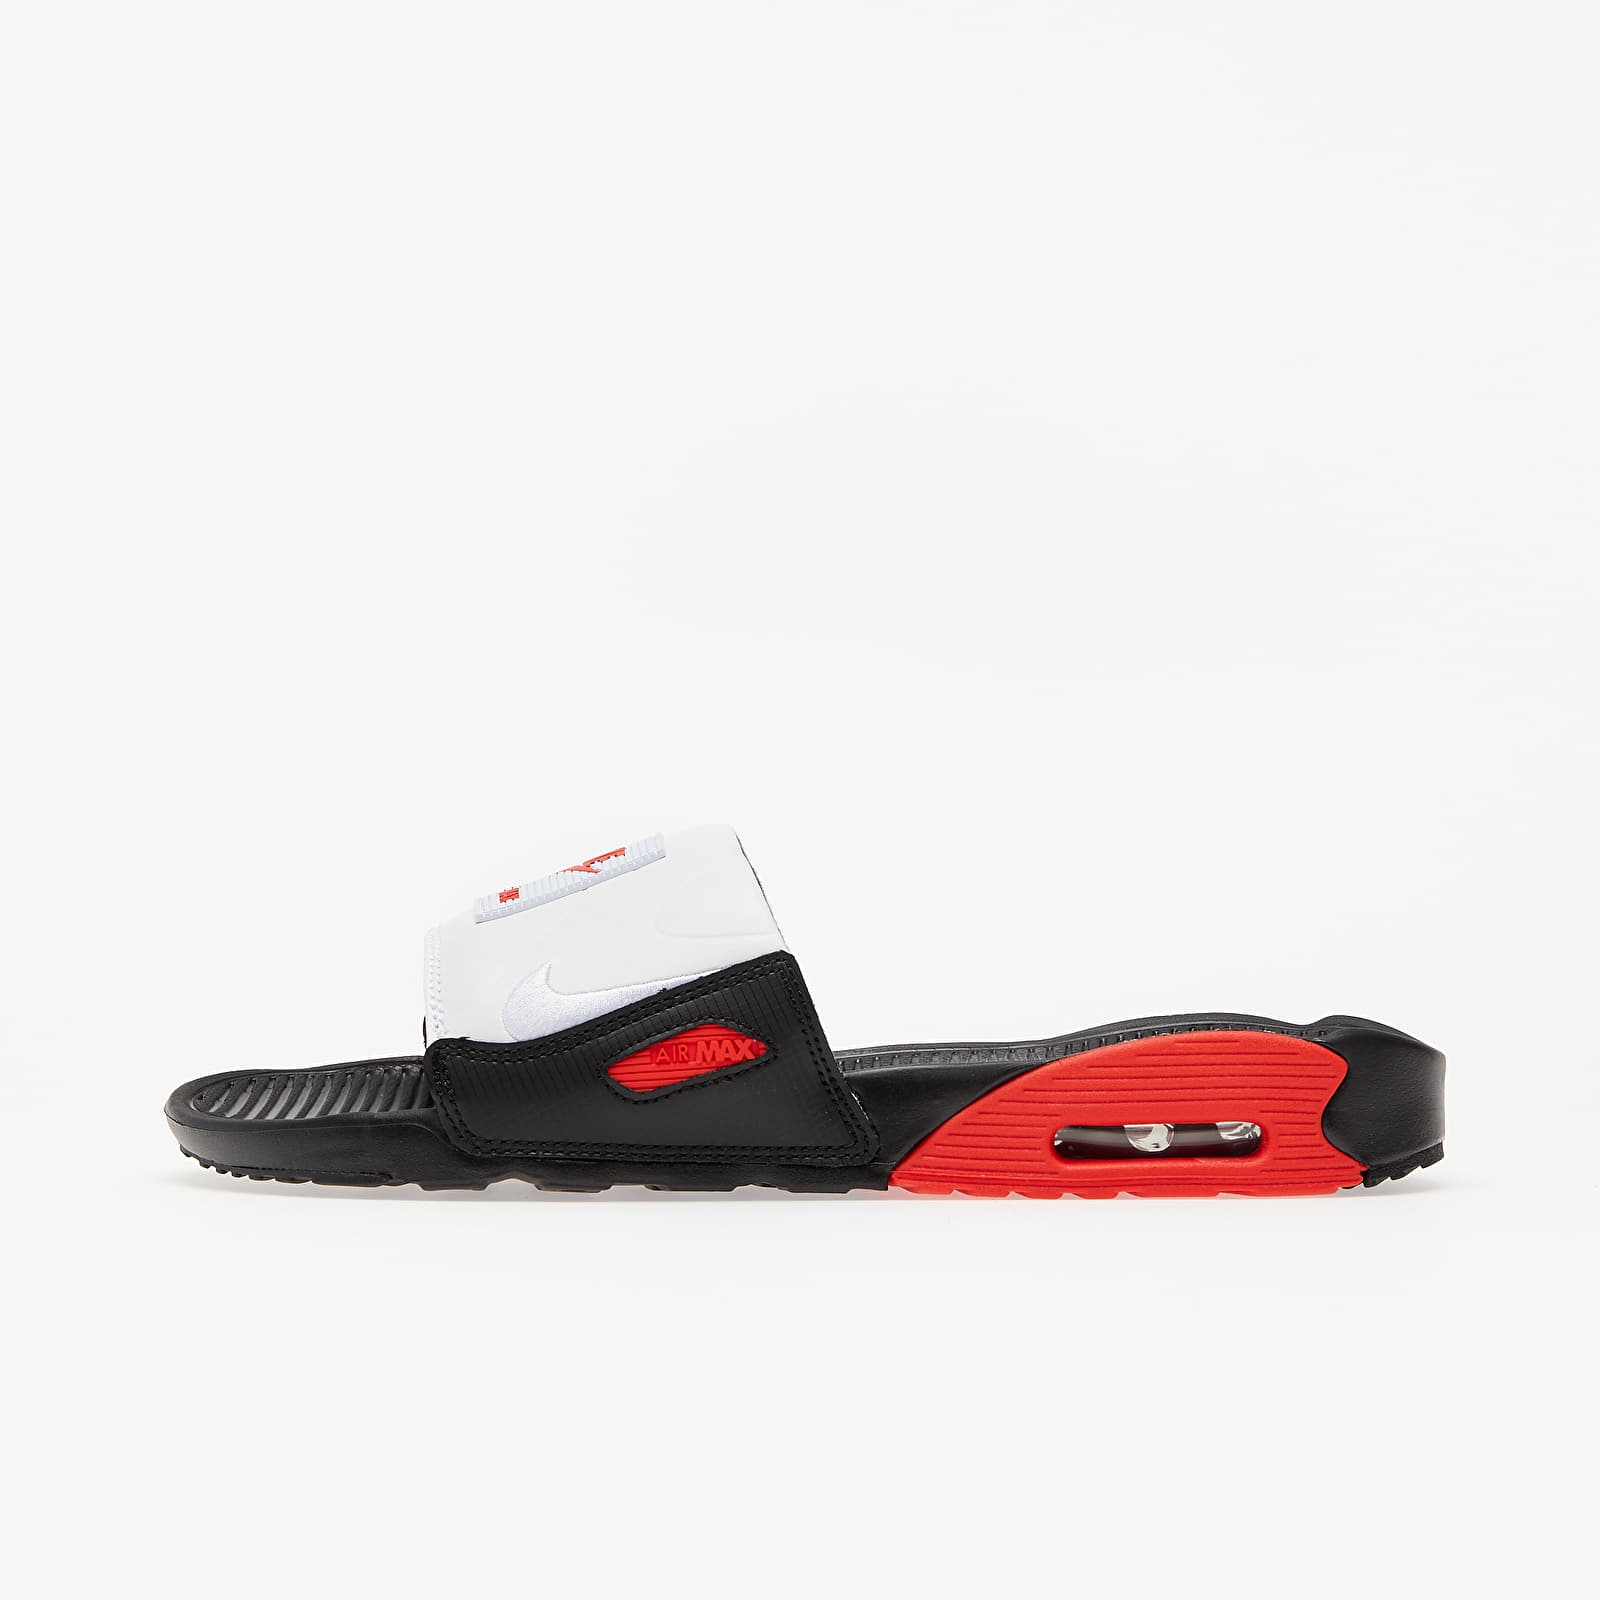 Men's shoes Nike Air Max 90 Slide Black/ White-Chile Red